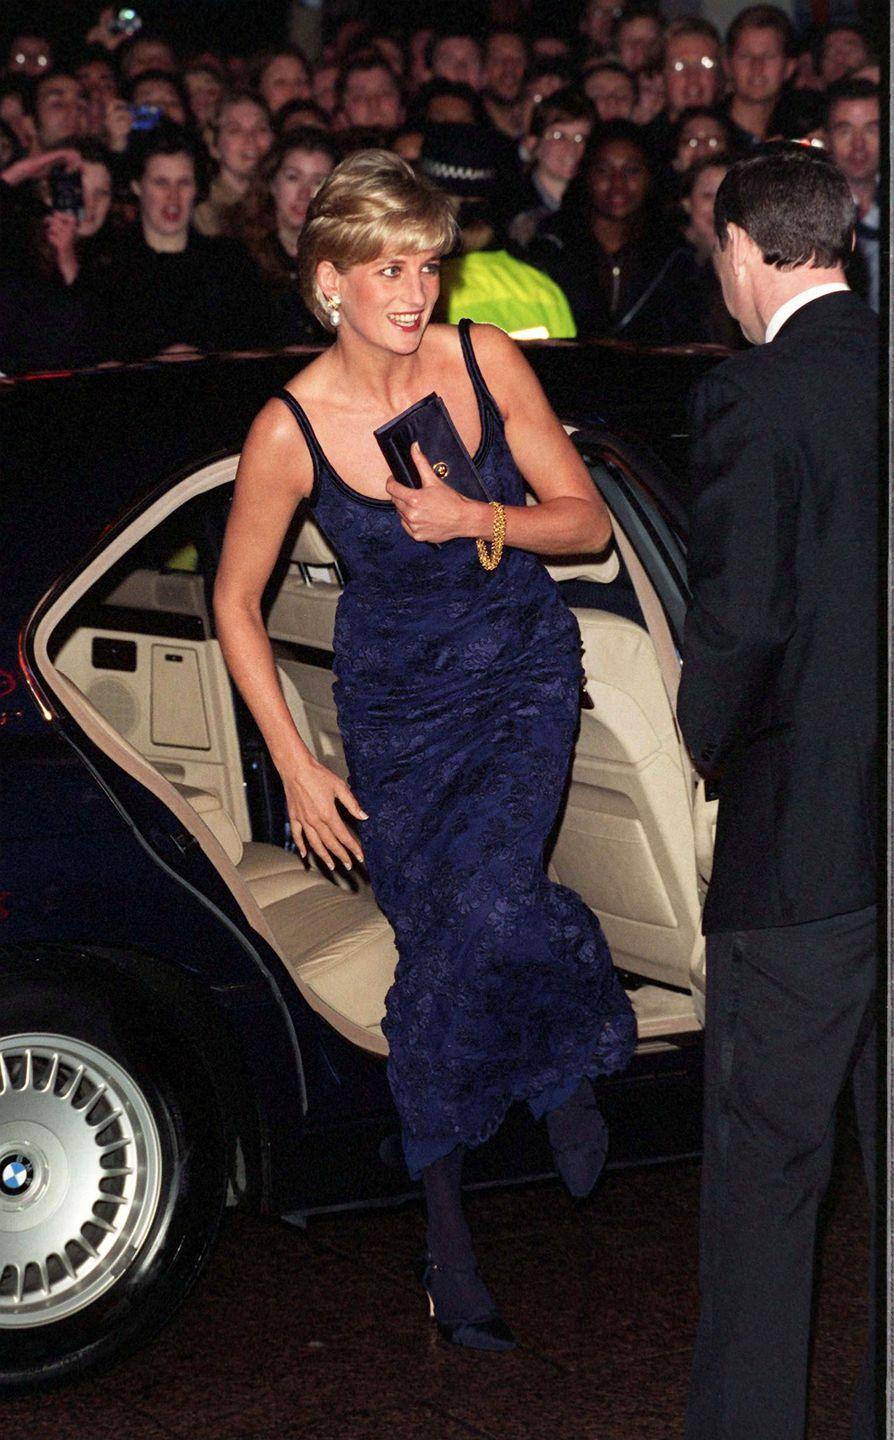 <p>We're waiting for the day that Kate or Meghan climbs out of a car with a little satin bag like Diana used to. Until then, we'll just reminisce about the good 'ole days with this fashion icon.</p>